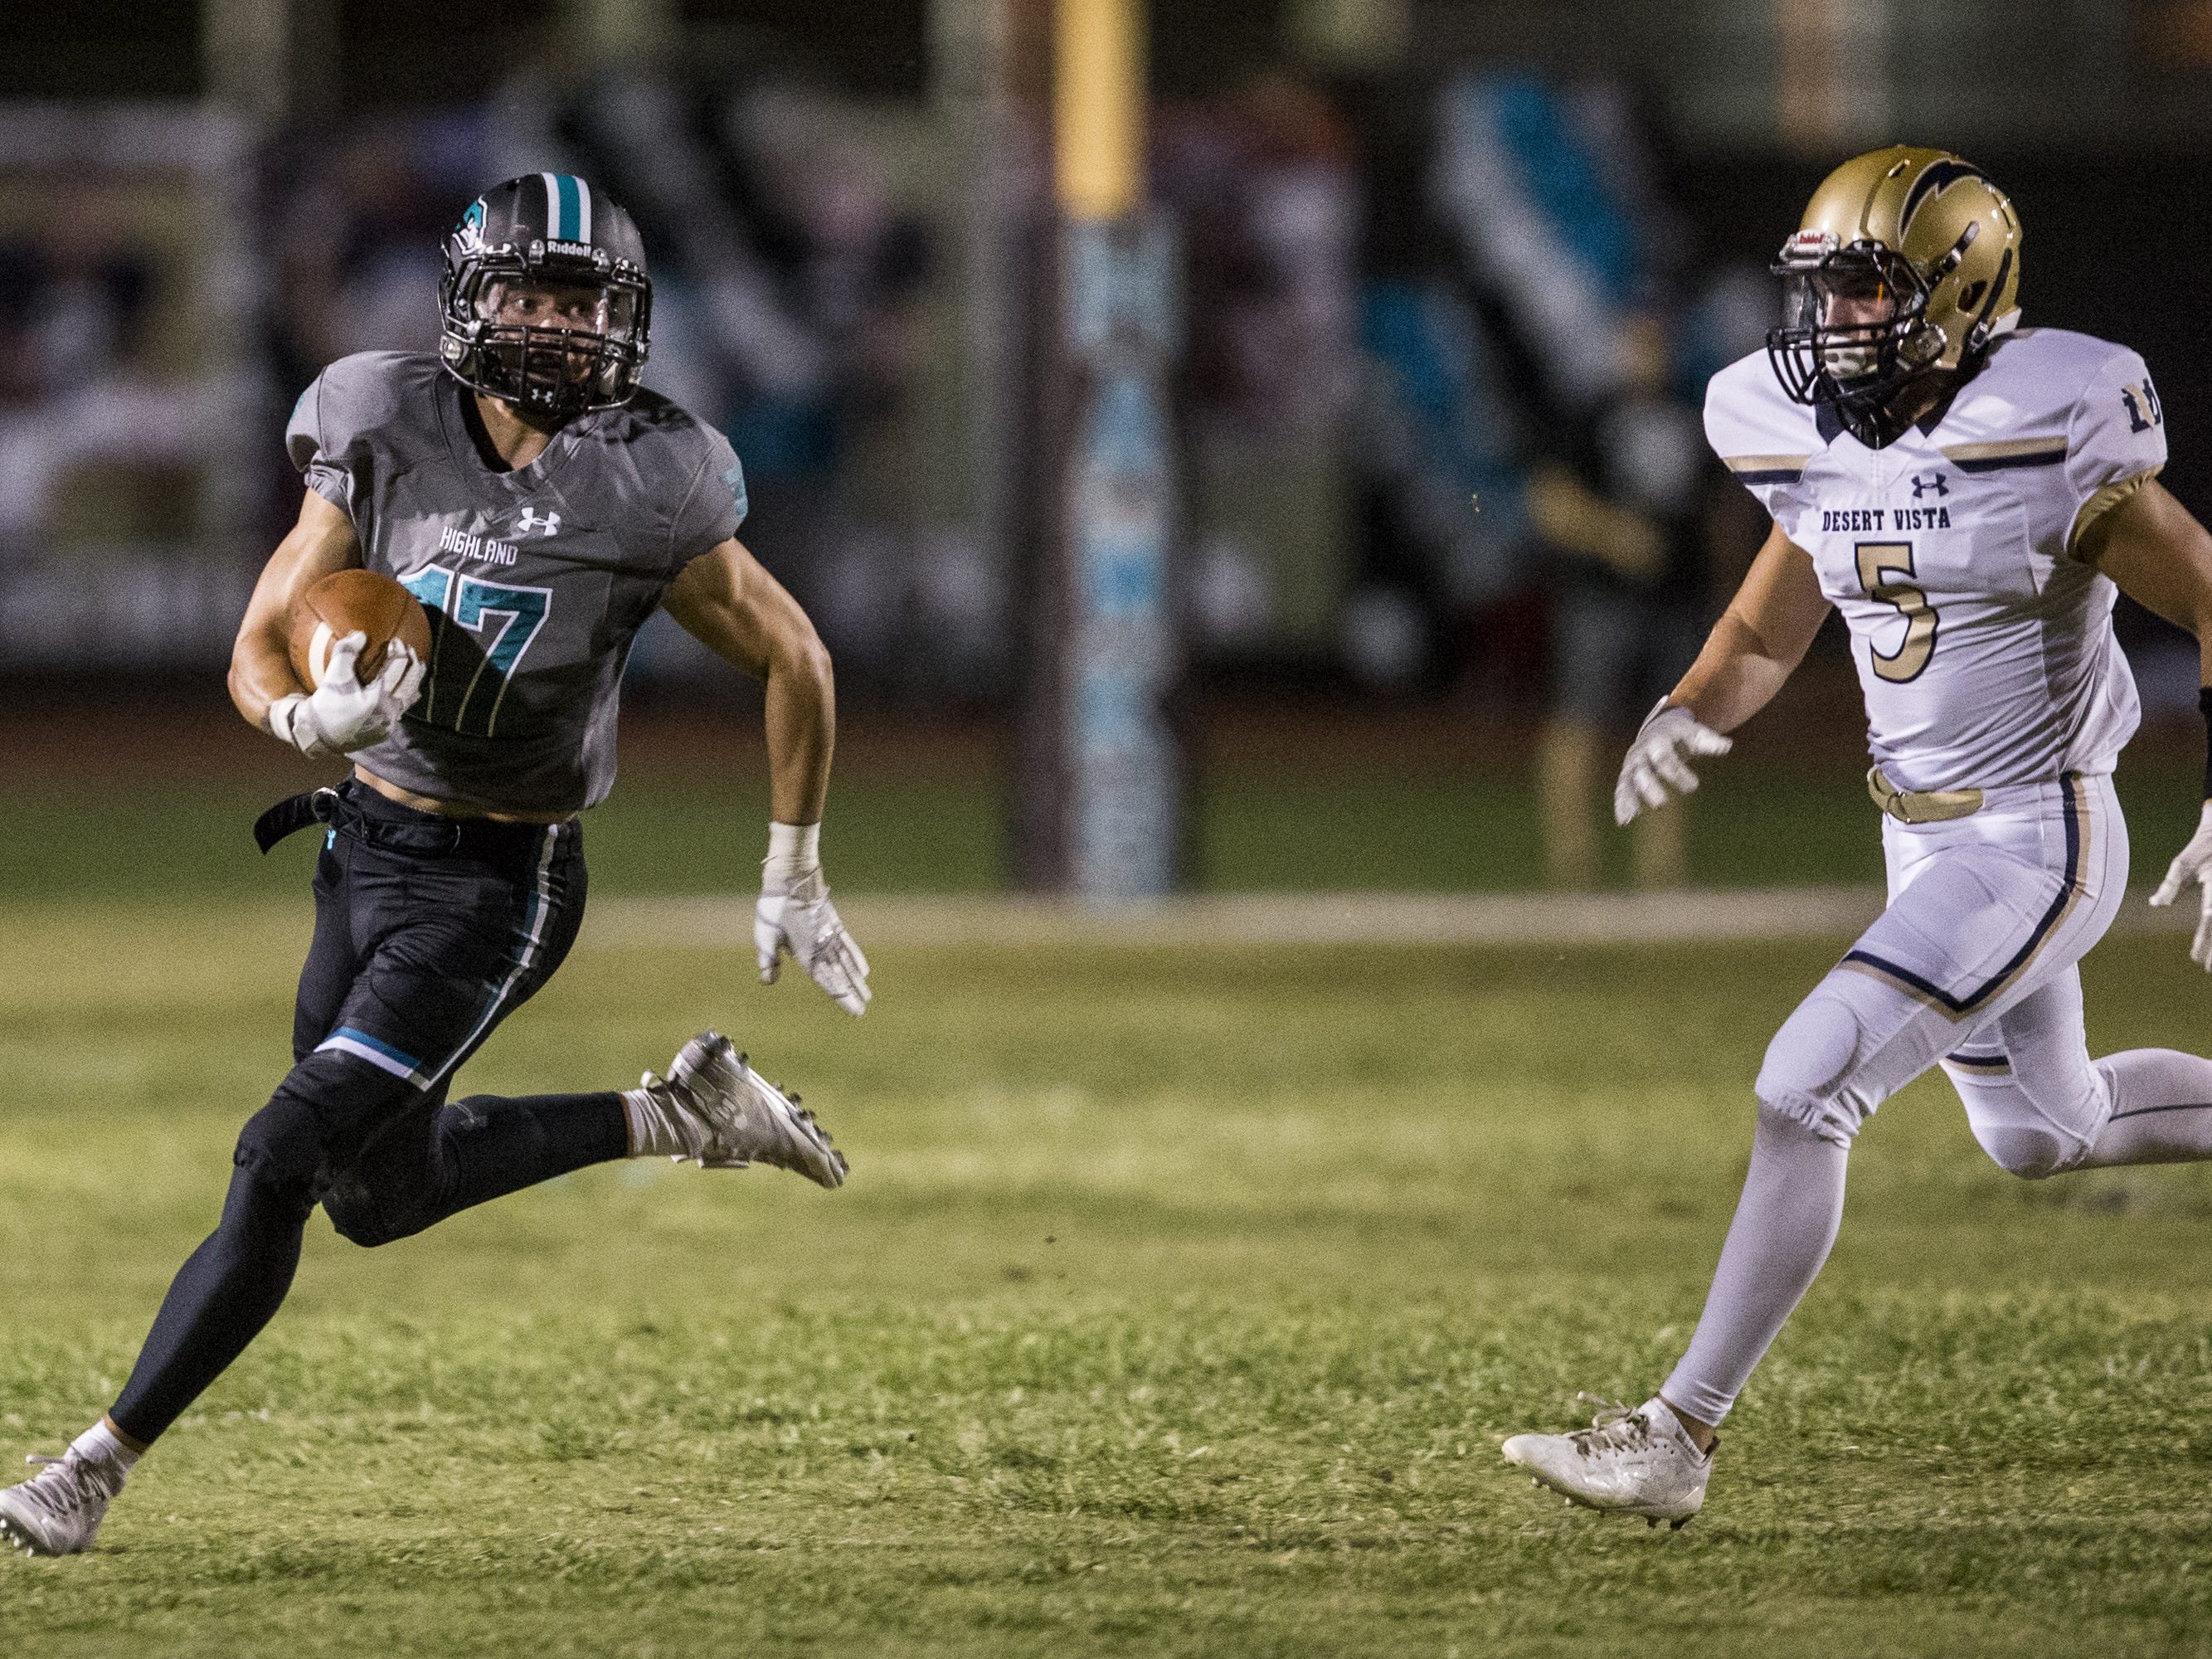 Highland's Tanner Crandall returns a punt against Desert Vista in the 2nd quarter on Friday, Sept. 21, 2018, at Highland High School in Gilbert, Ariz.   #azhsfb